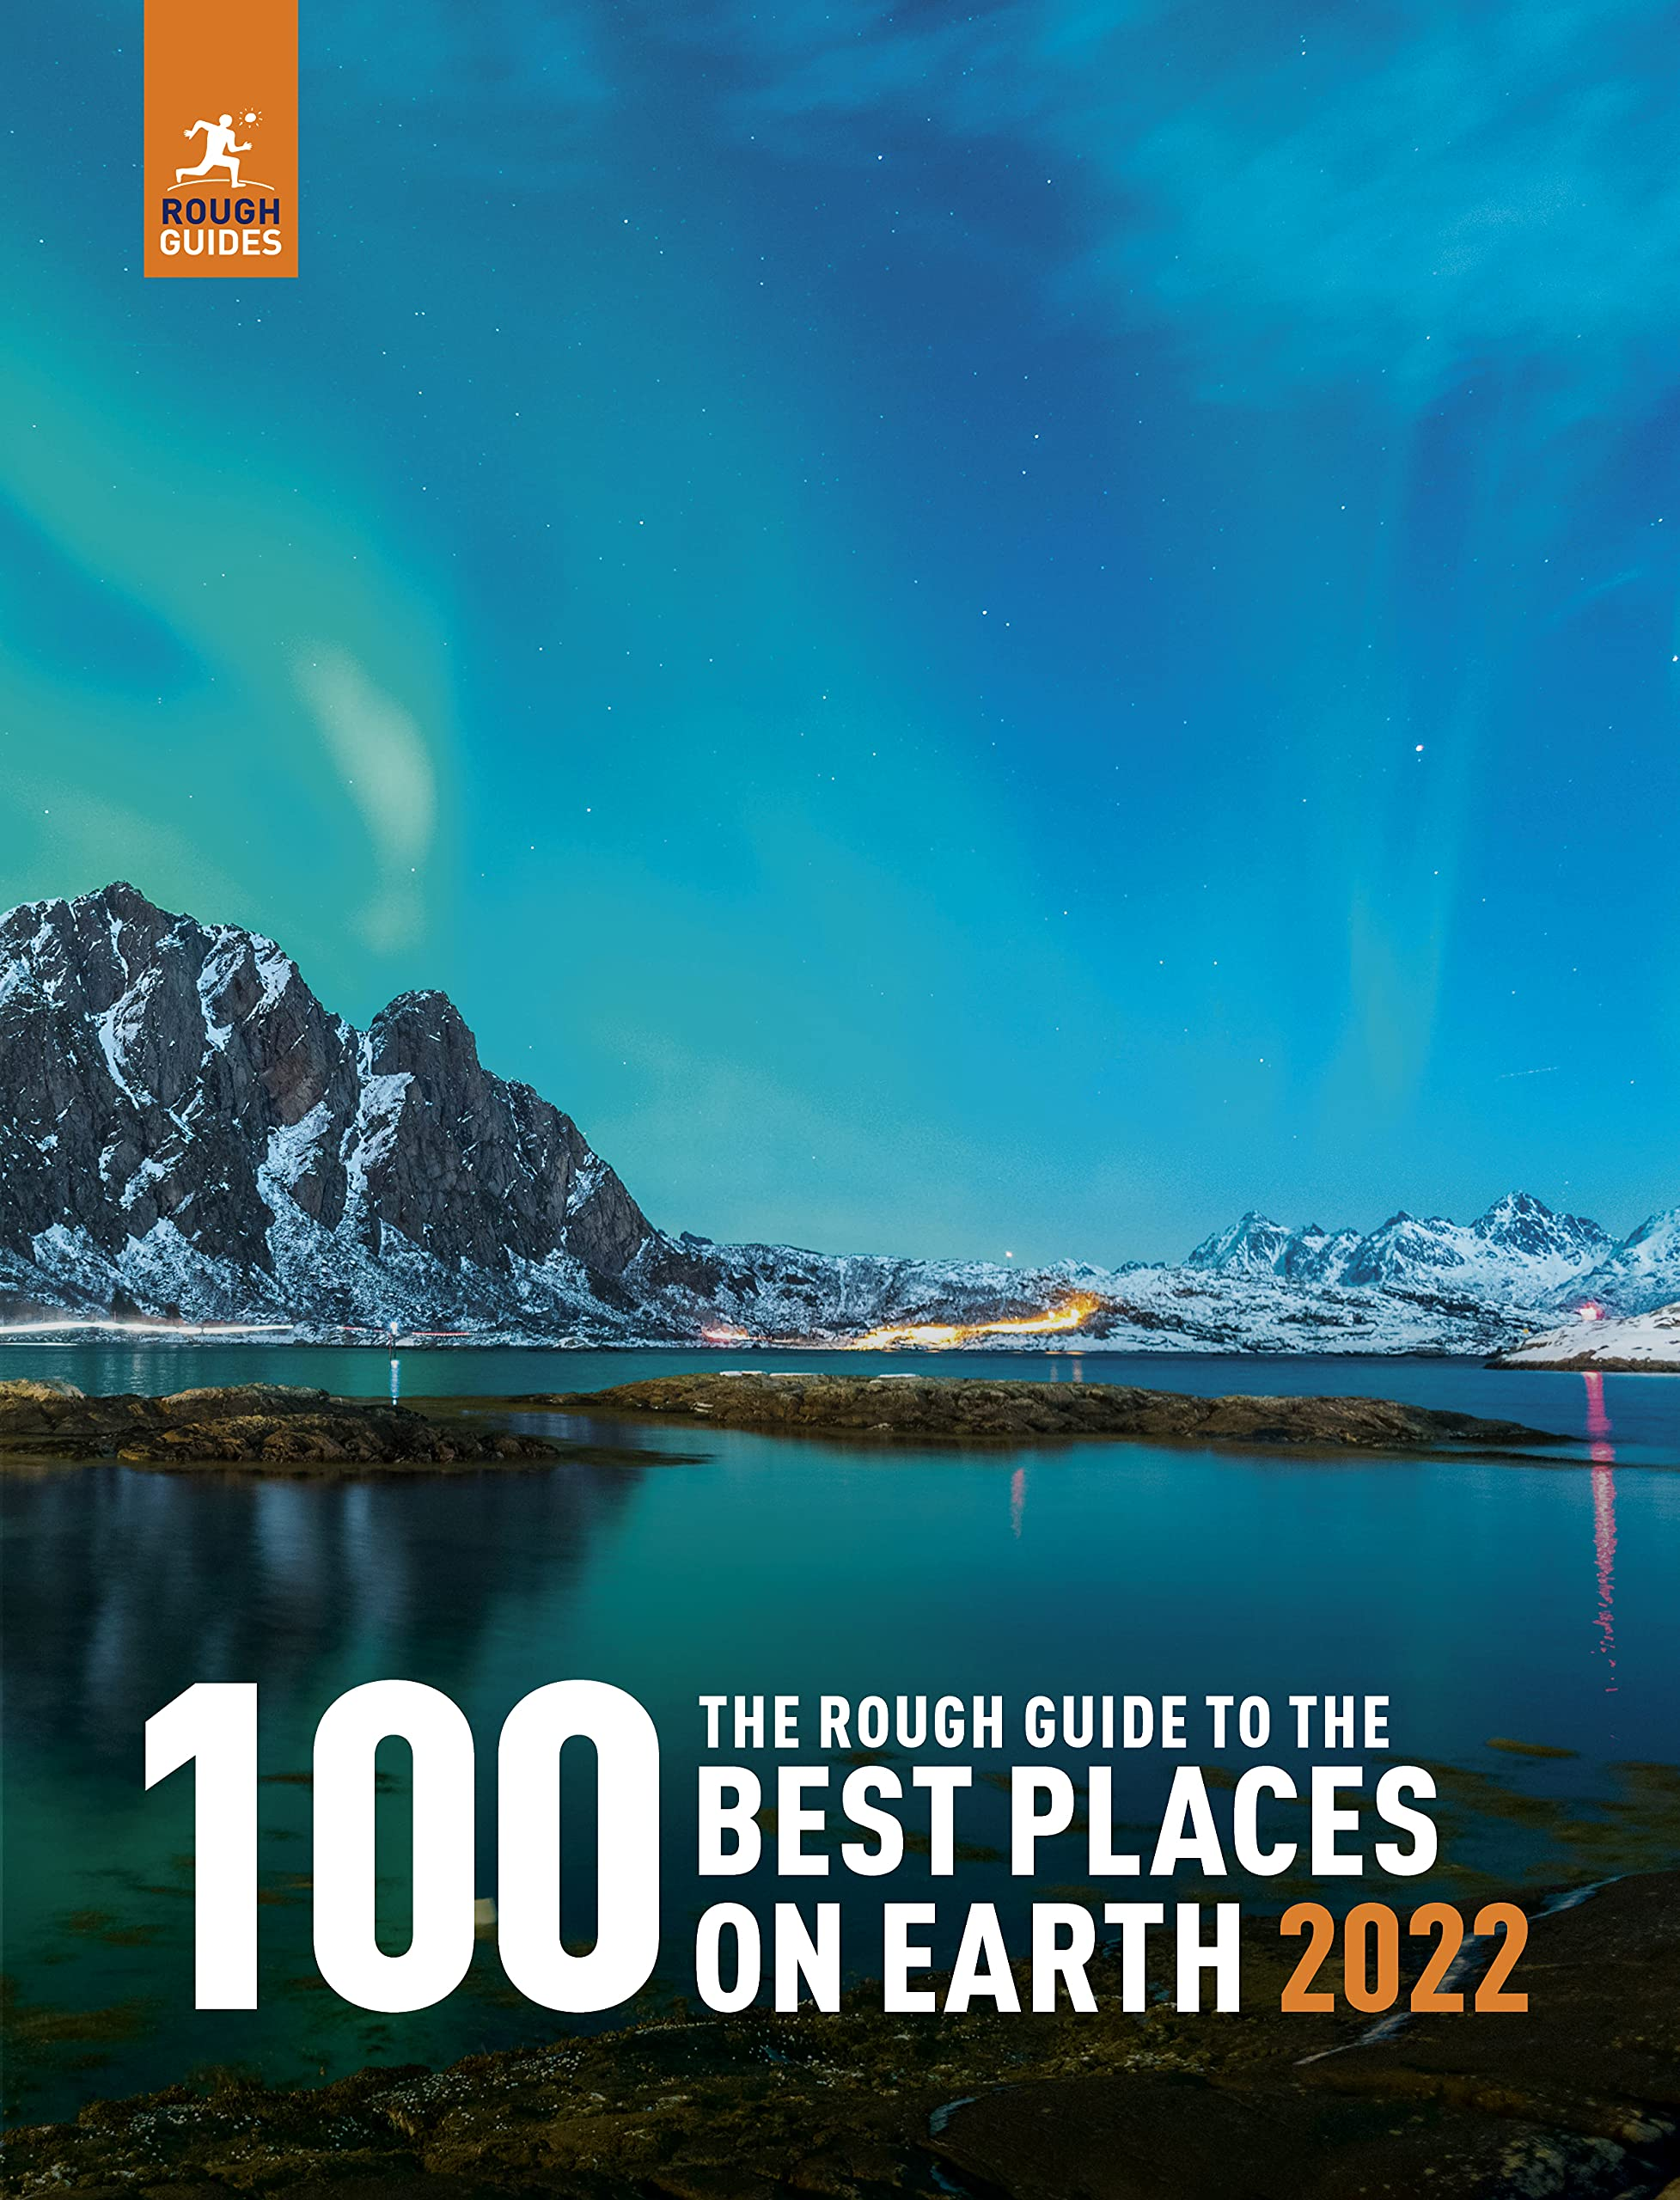 Reisinspiratieboek The Rough Guide to the 100 Best Places on Earth 2021 | Rough Guides de zwerver